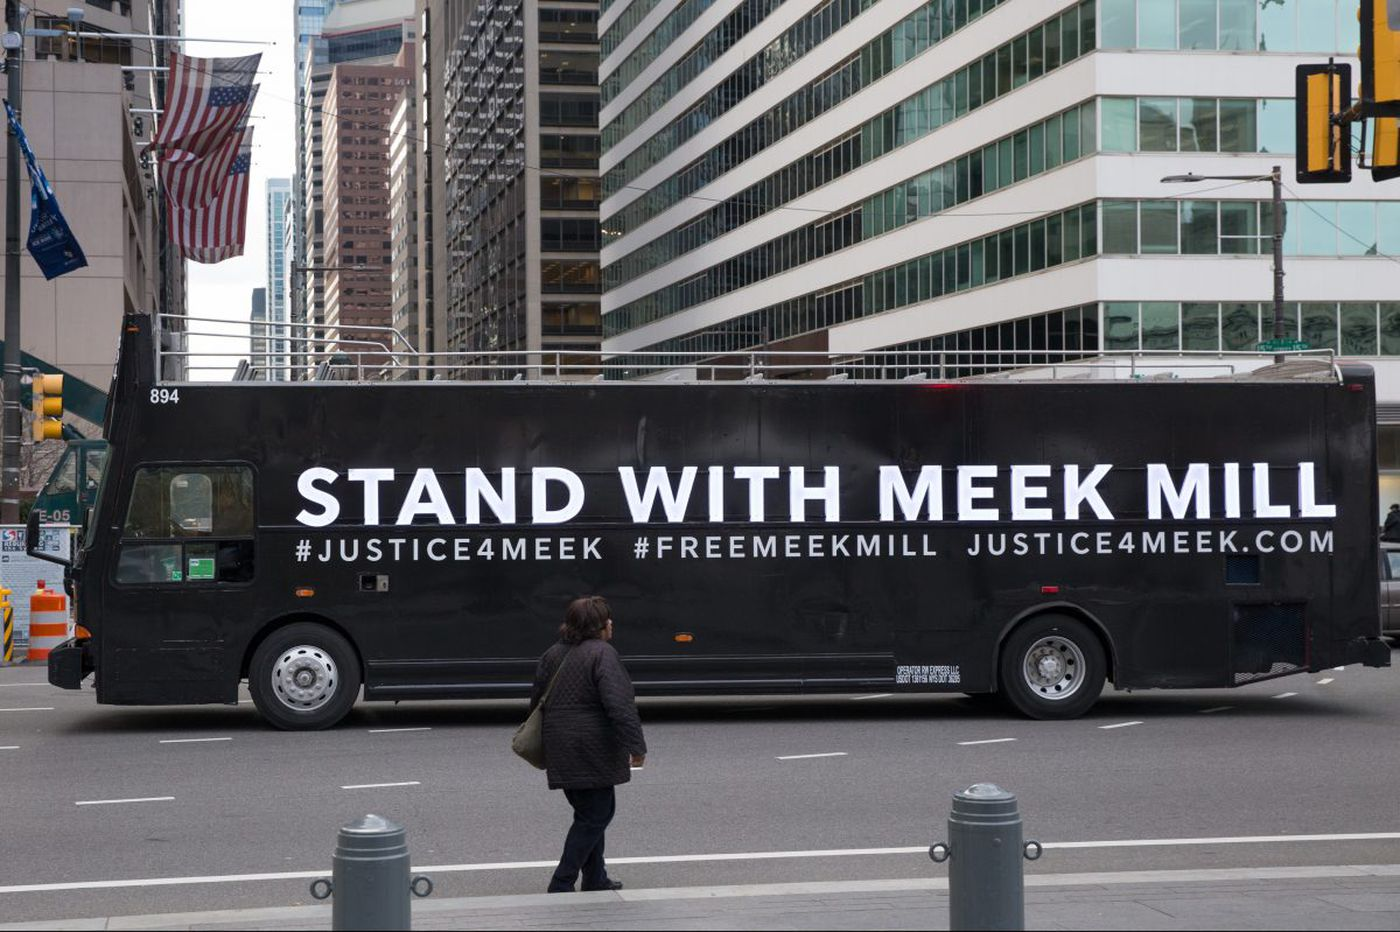 Making a martyr of Meek Mill doesn't help criminal justice reform | Opinion